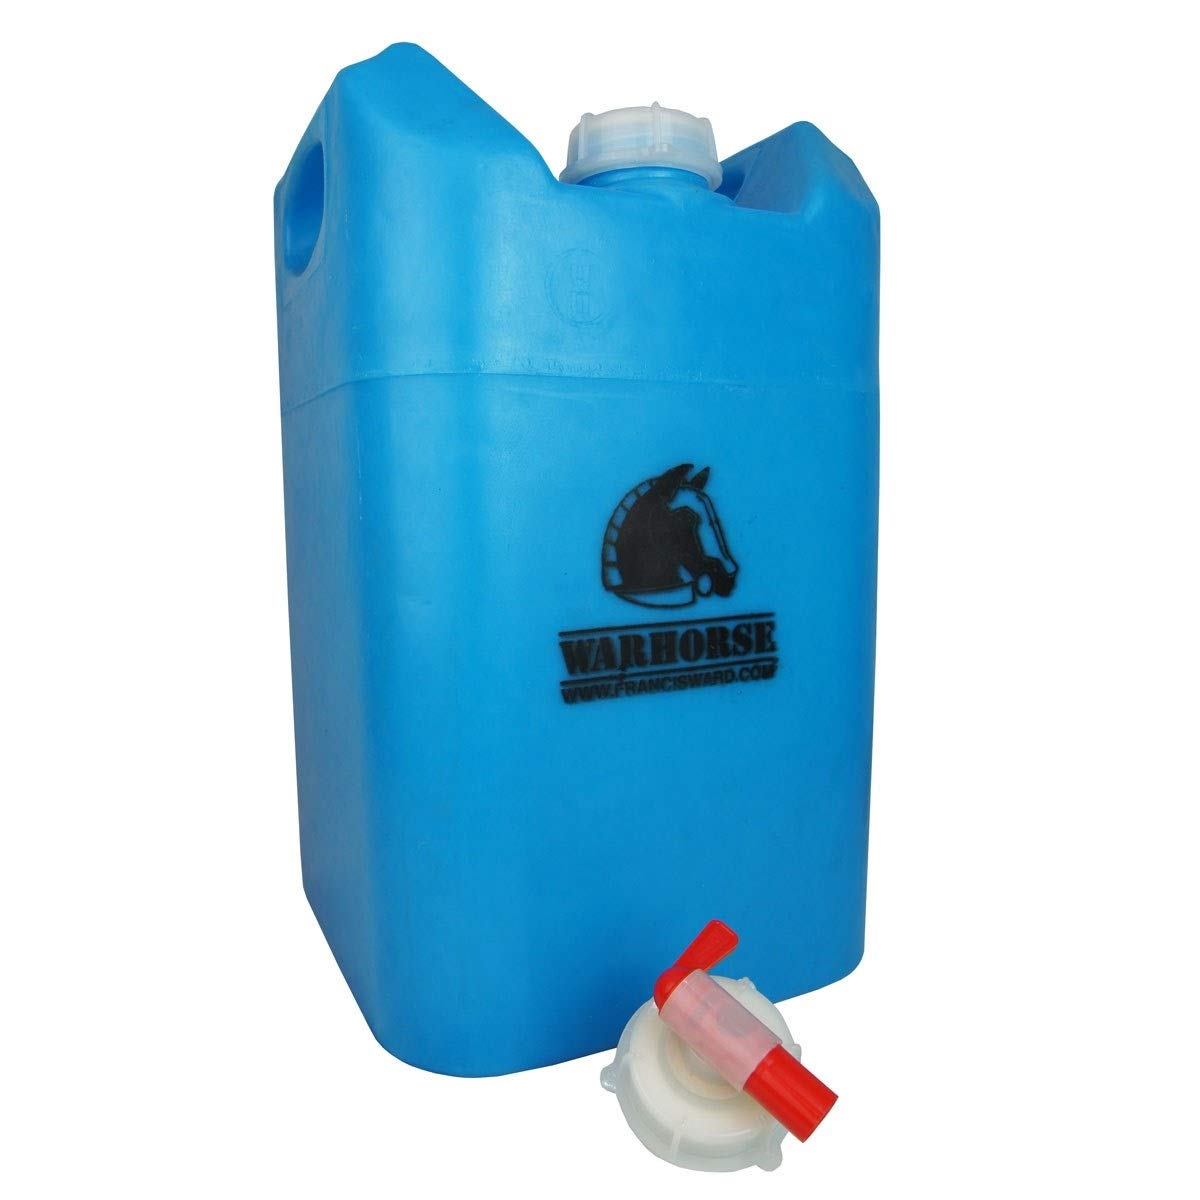 Francis Ward Warhorse & FOC Tap Water Carrier (7.9 gallons) (Blue) by Francis Ward